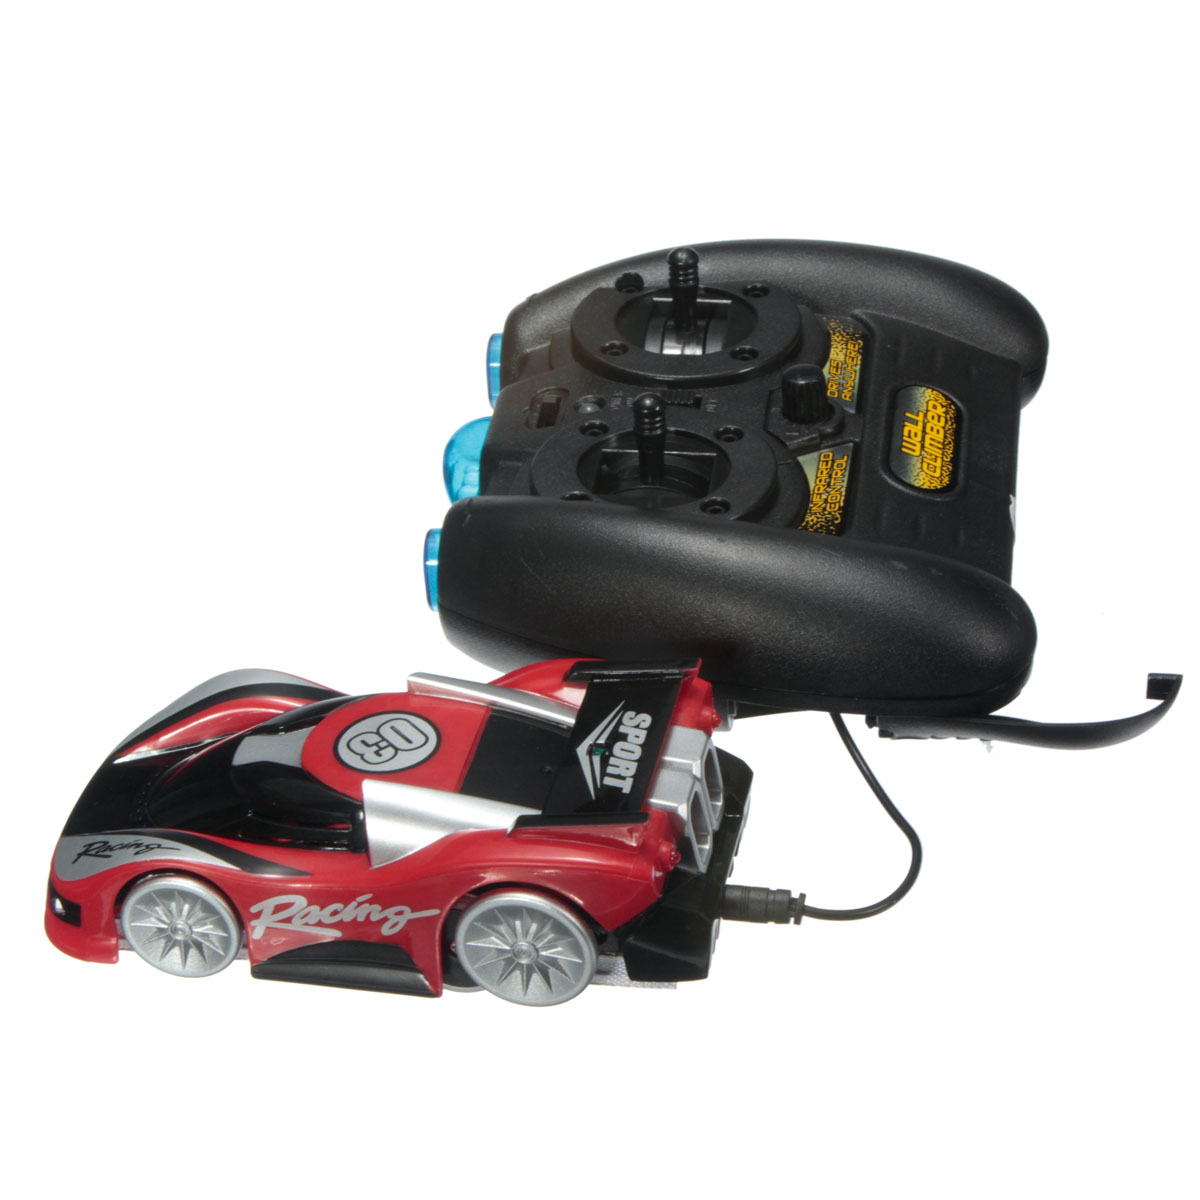 Rc Wall: Super Wall Climbing RC Car Drives With Zero Gravity Sale